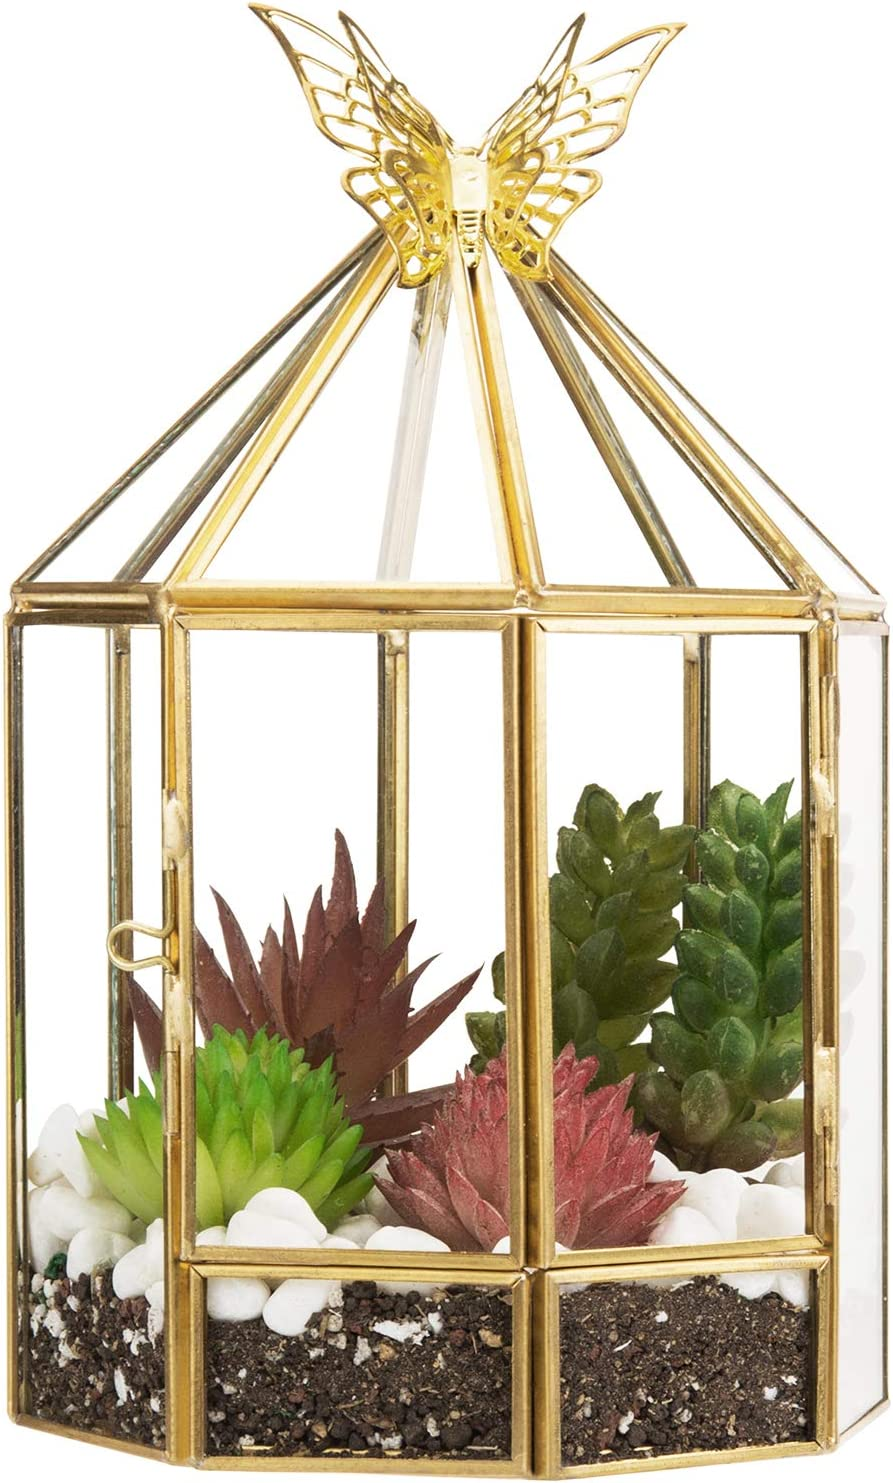 MyGift 7.5-Inch Glass Plant Terrarium Hexagon Birdcage Design with Brass-Tone Metal Frame, Side Door and Butterfly Accent